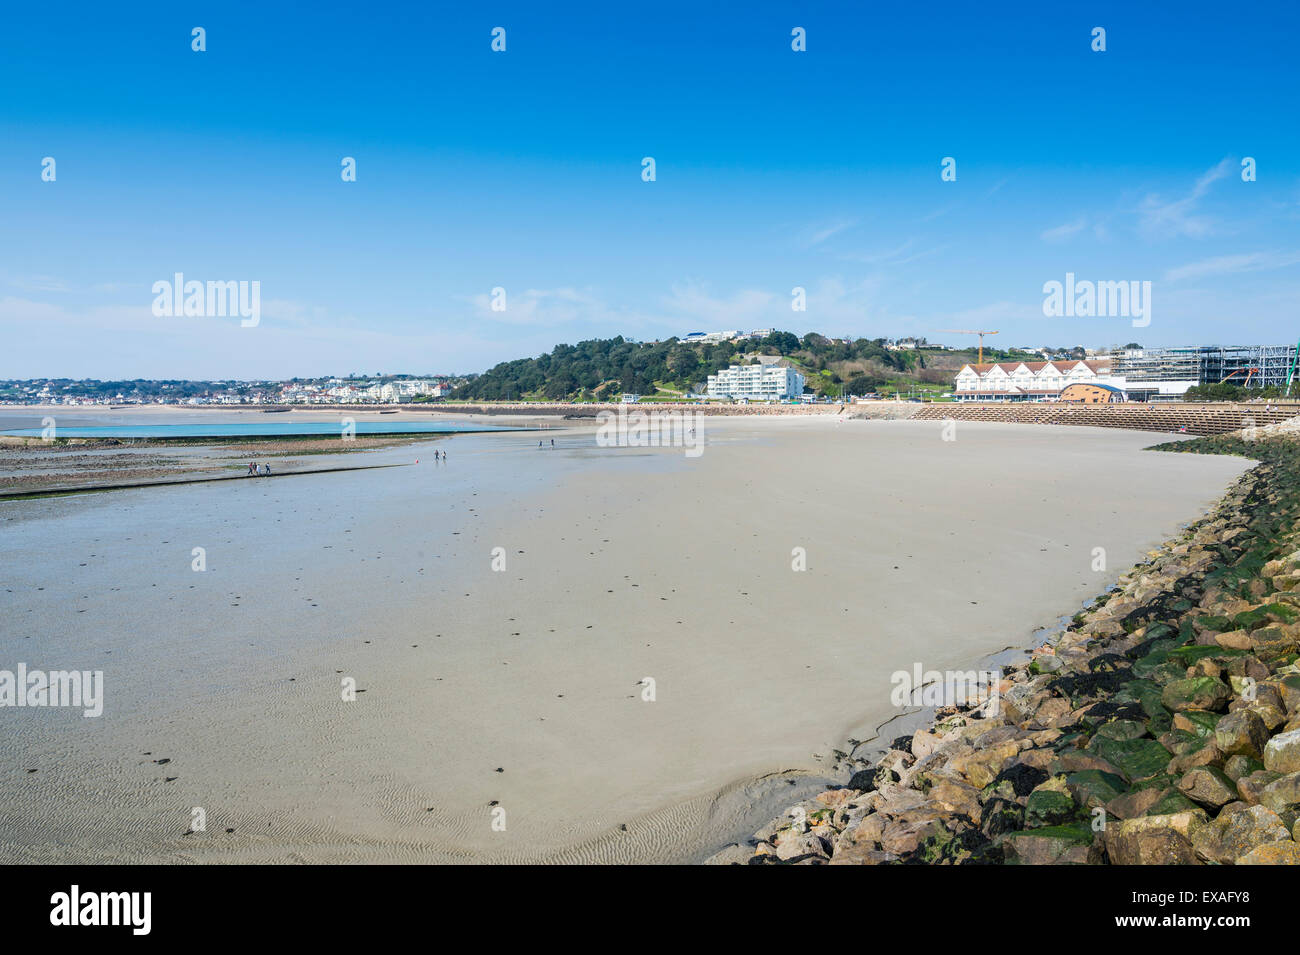 View over the bay of St. Helier, Jersey, Channel Islands, United Kingdom, Europe - Stock Image